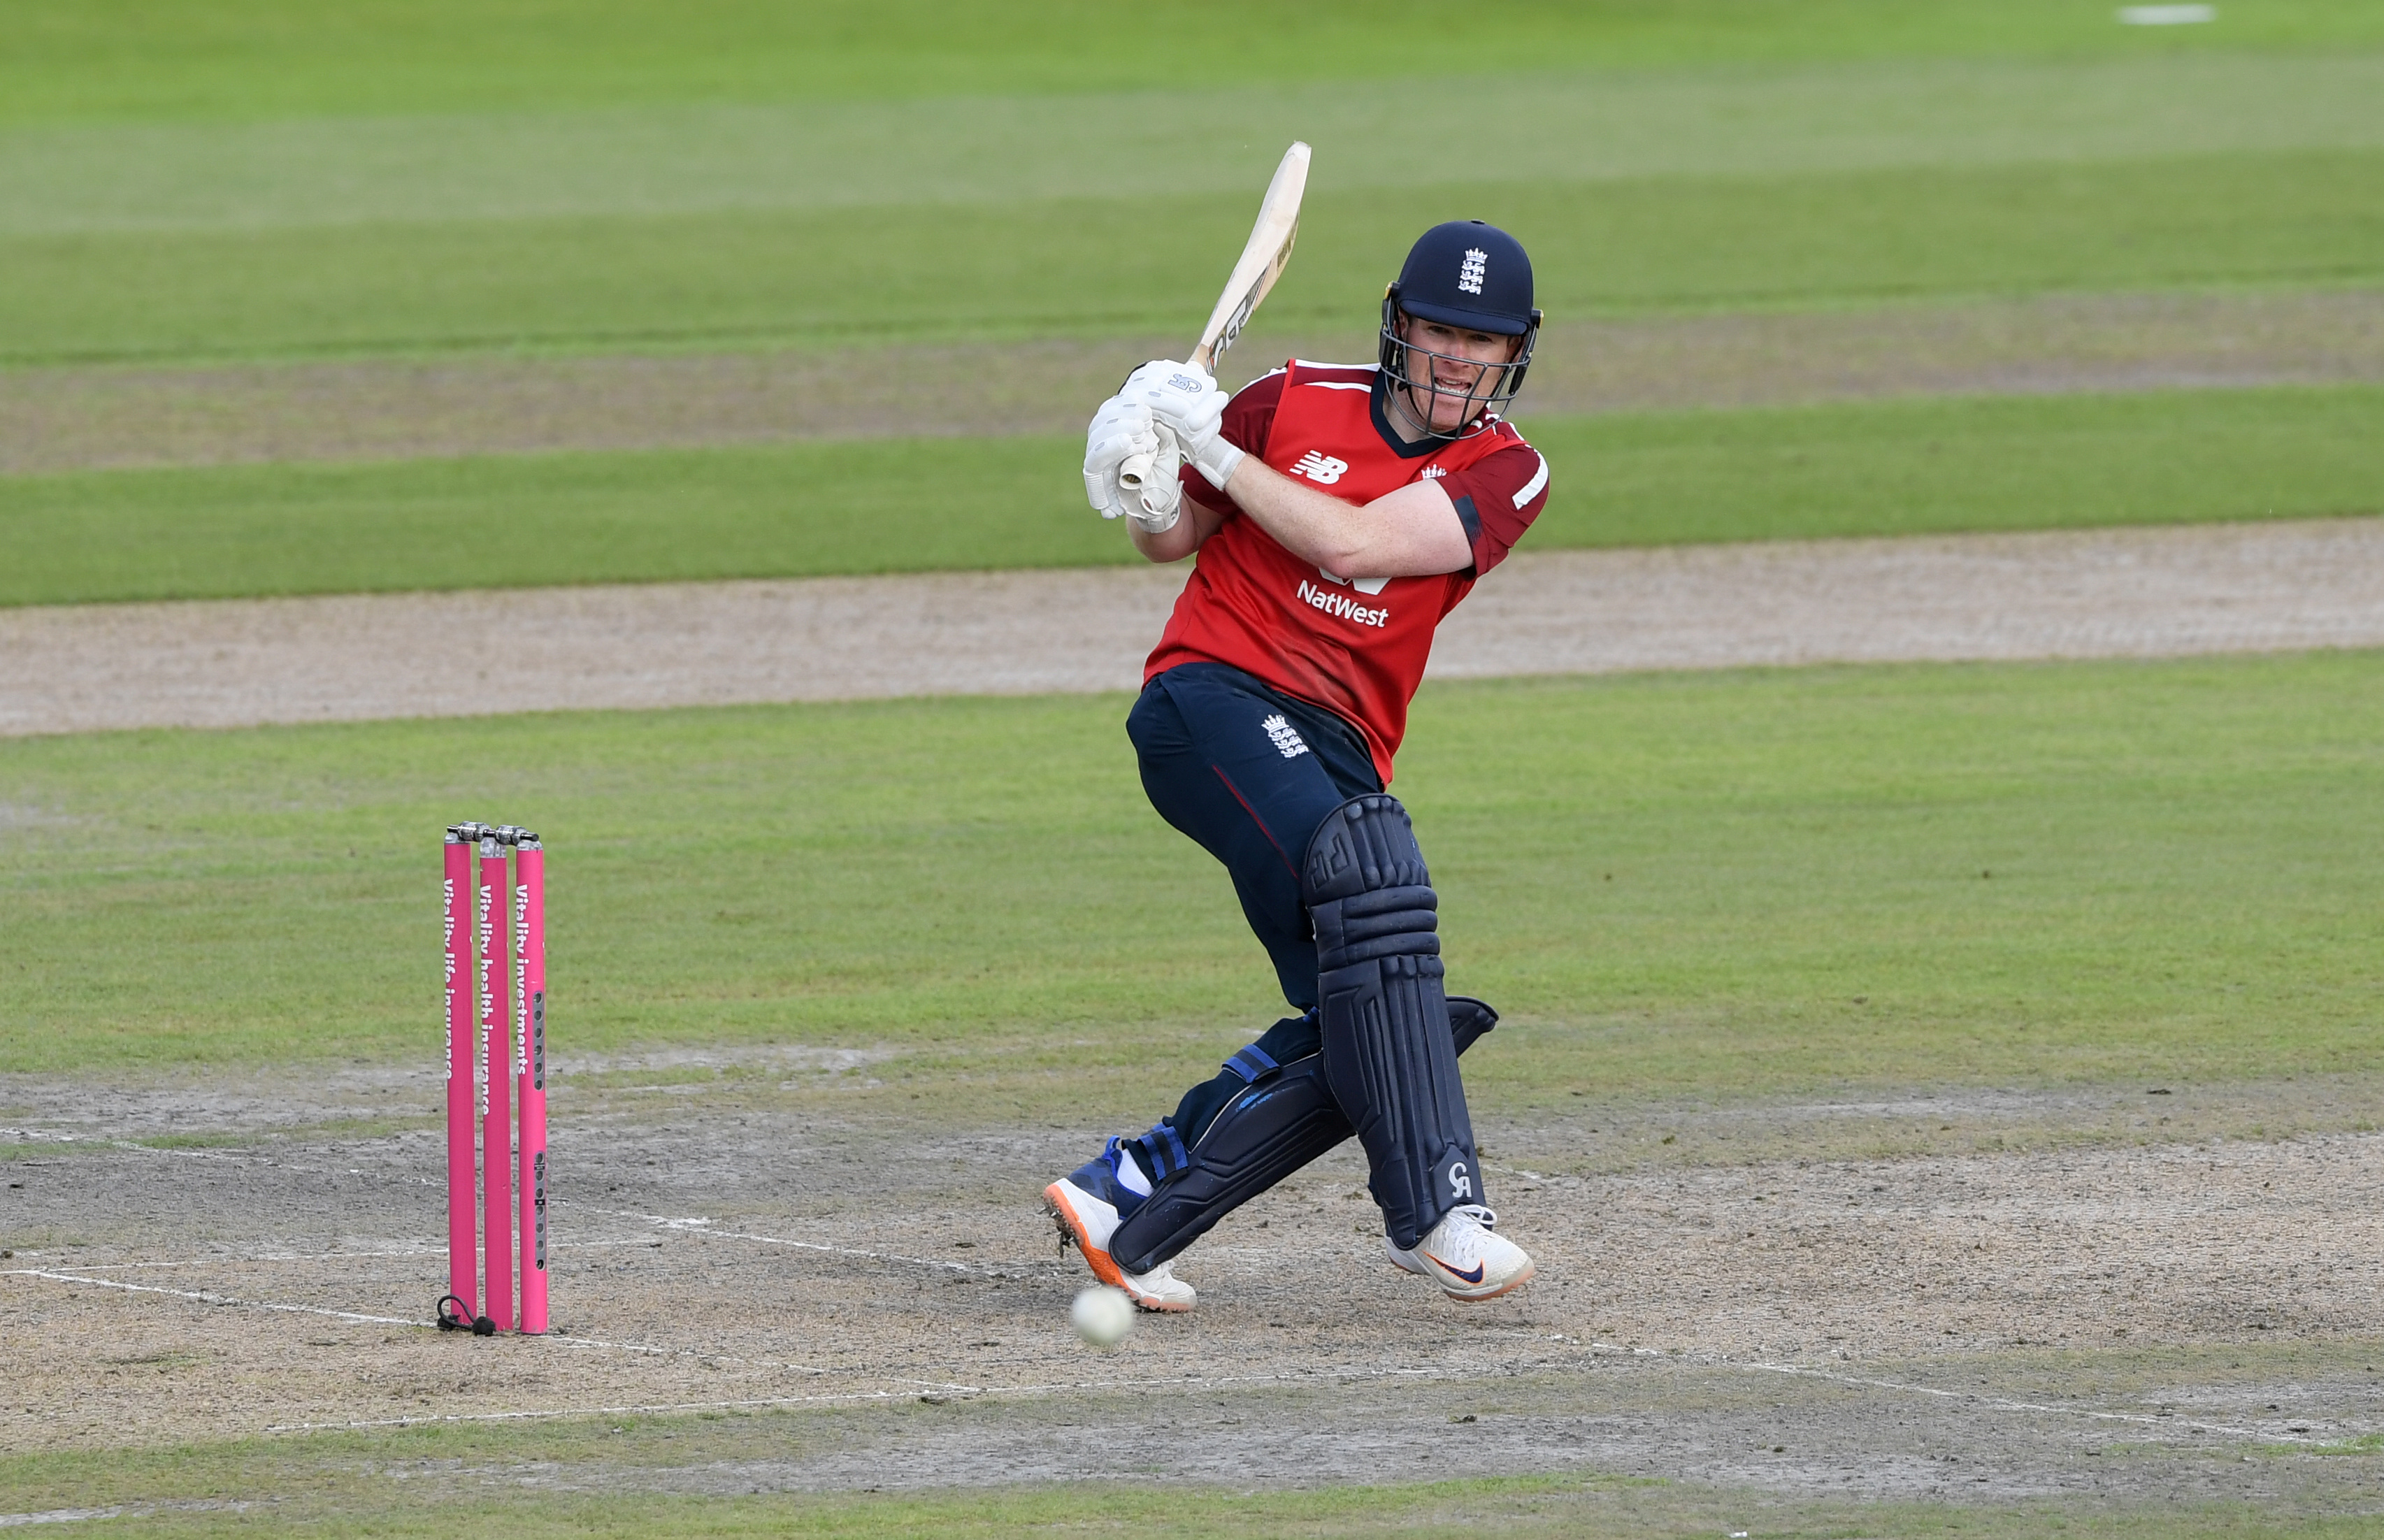 England's Eoin Morgan in action. Photo: Reuters